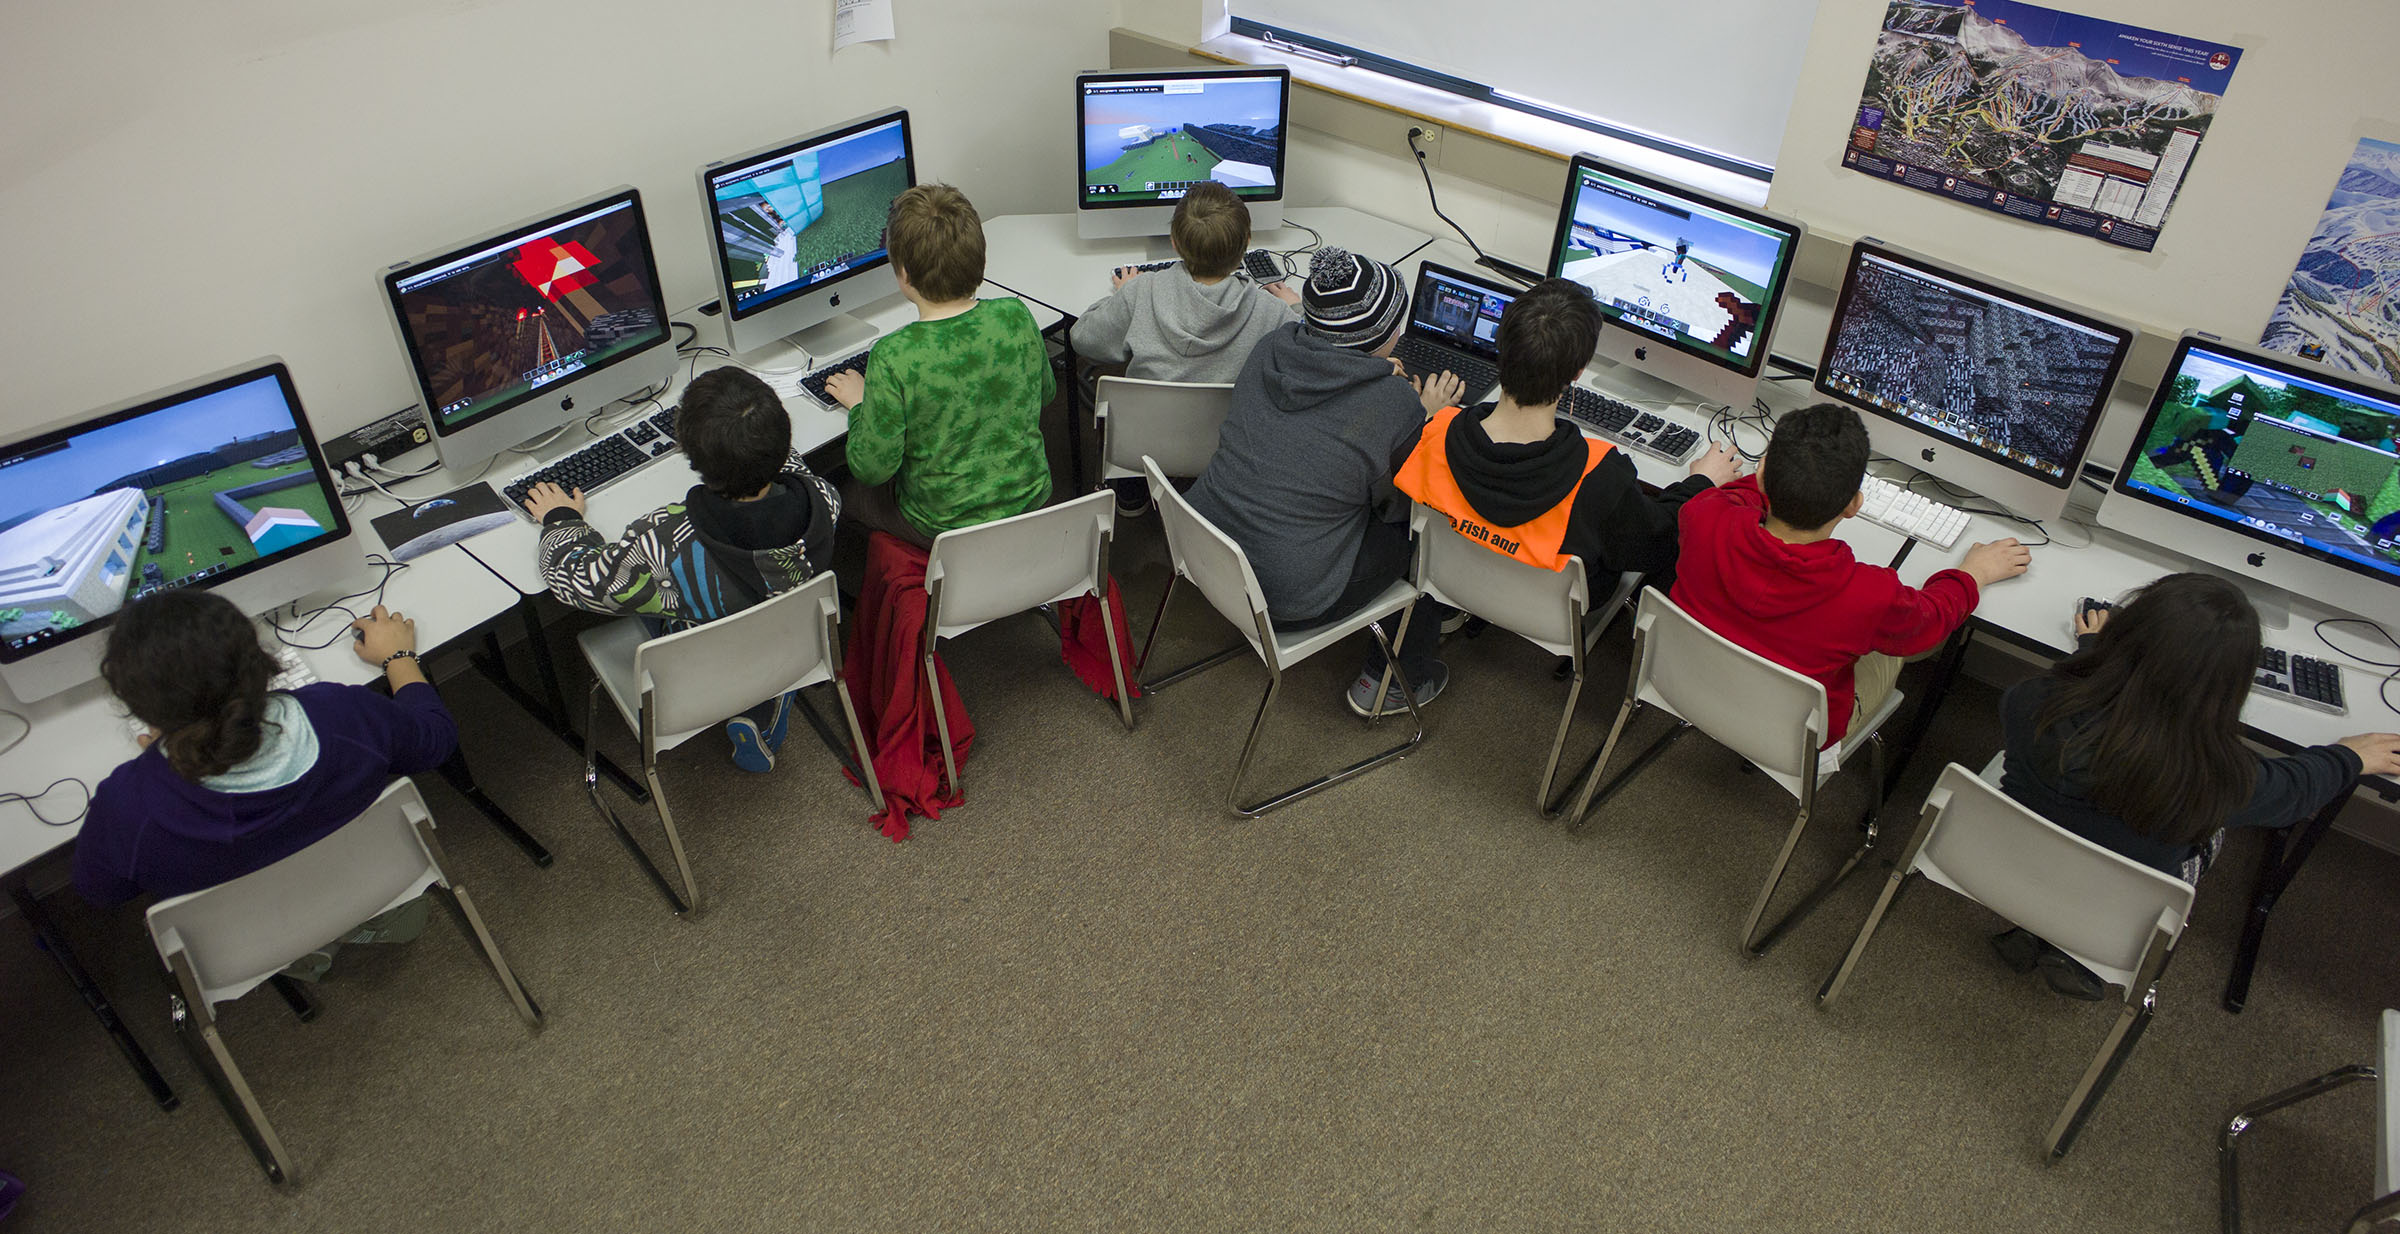 Can students learn the Common Core through gaming? - The Hechinger ...